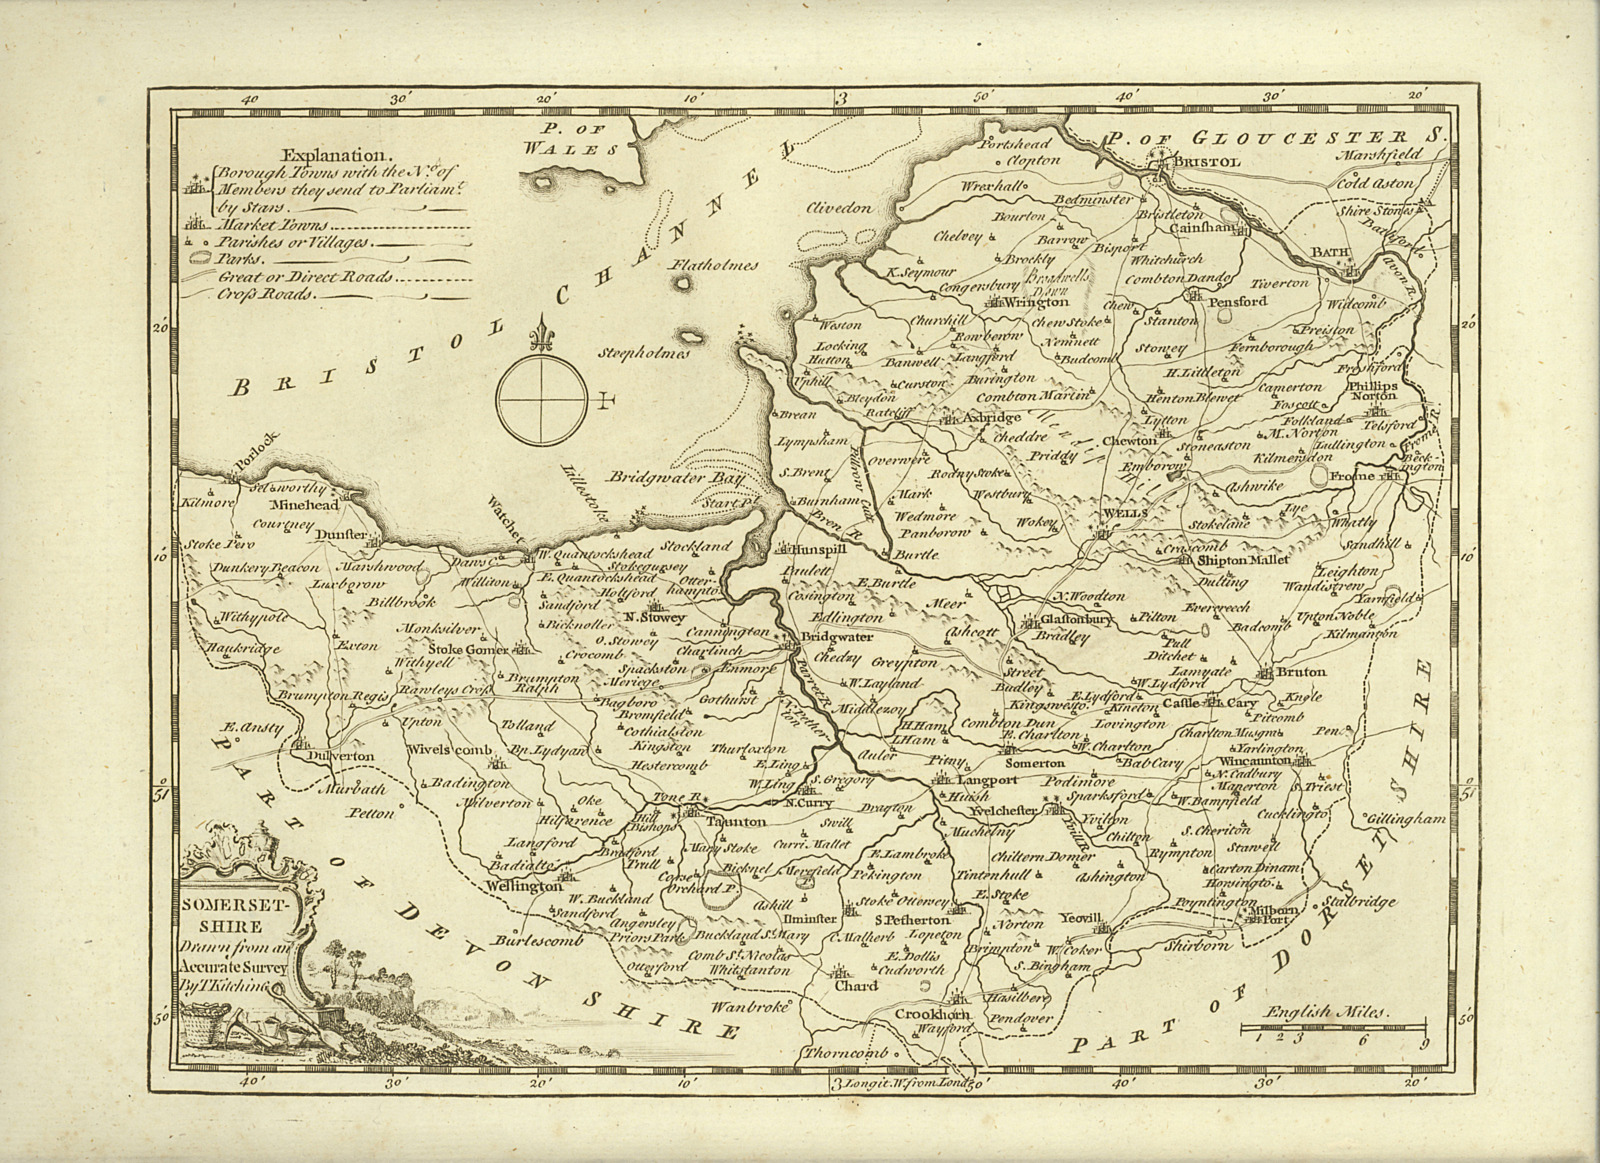 File:Somersetshire map 1786.jpg